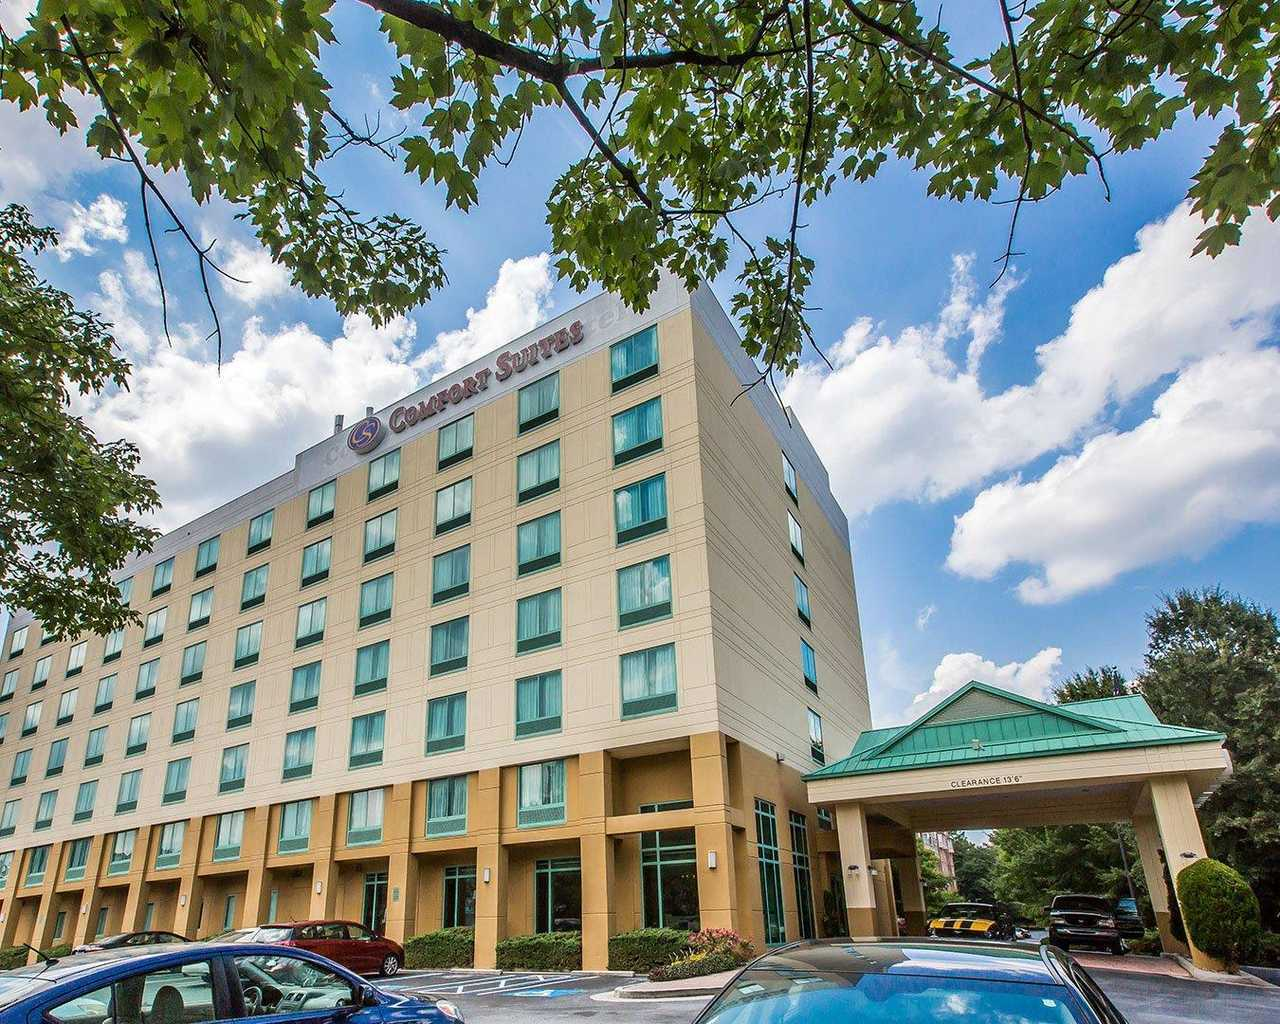 Comfort Suites Perimeter Area Atlanta Ga Jobs